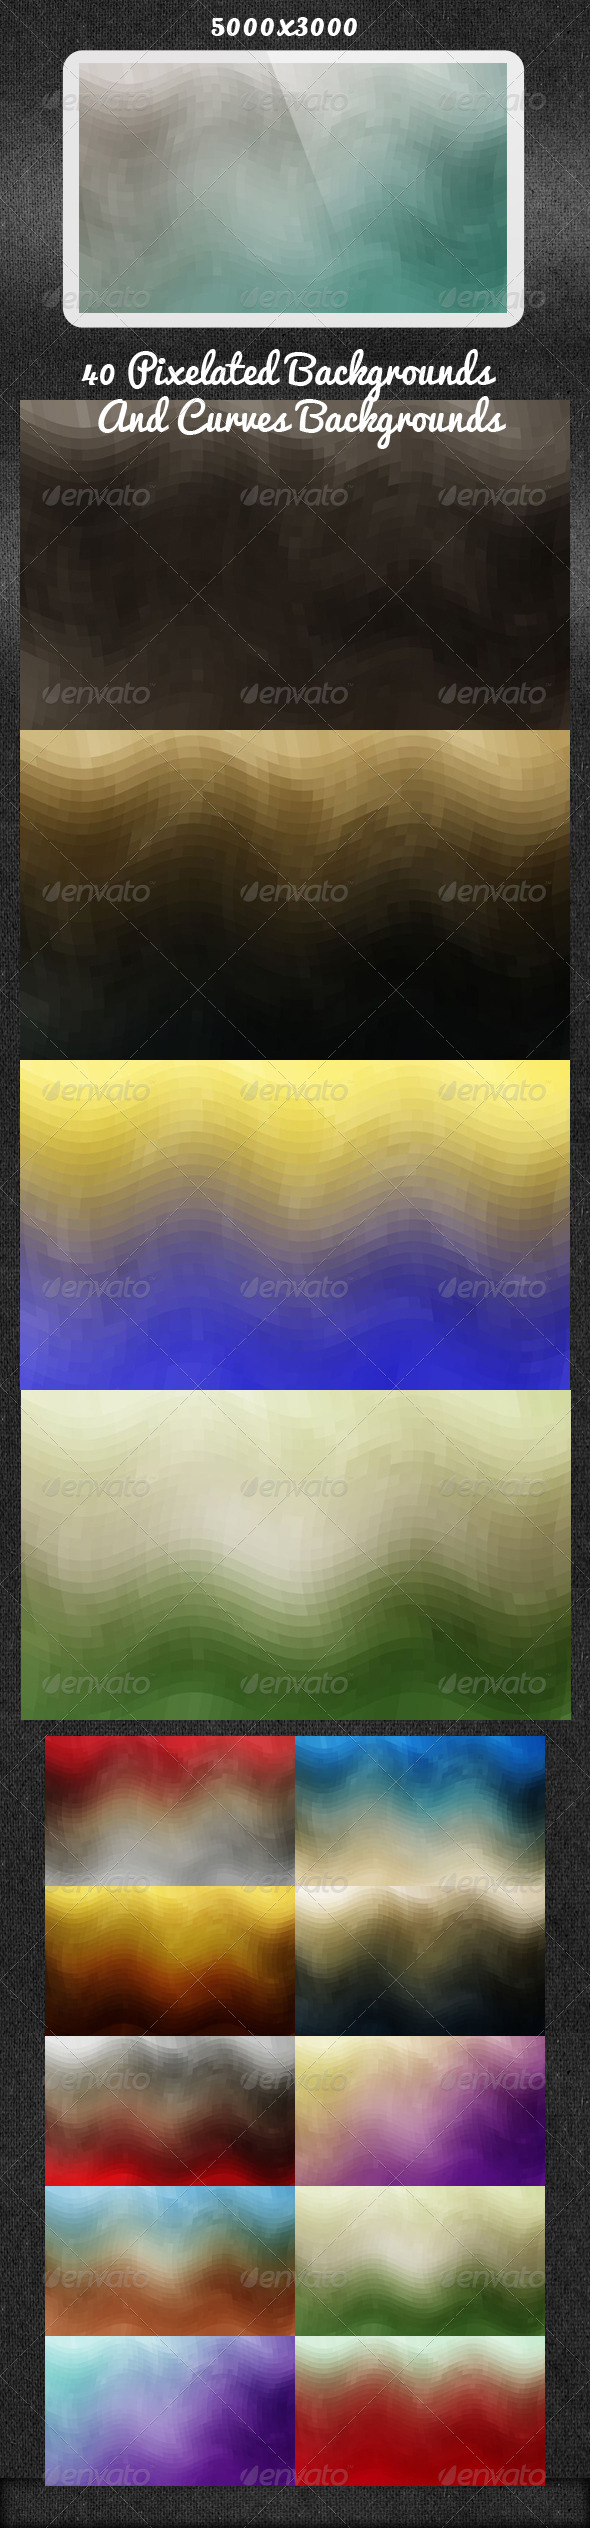 GraphicRiver 40 Pixelated Backgrounds And Curves Backgrounds 5403880